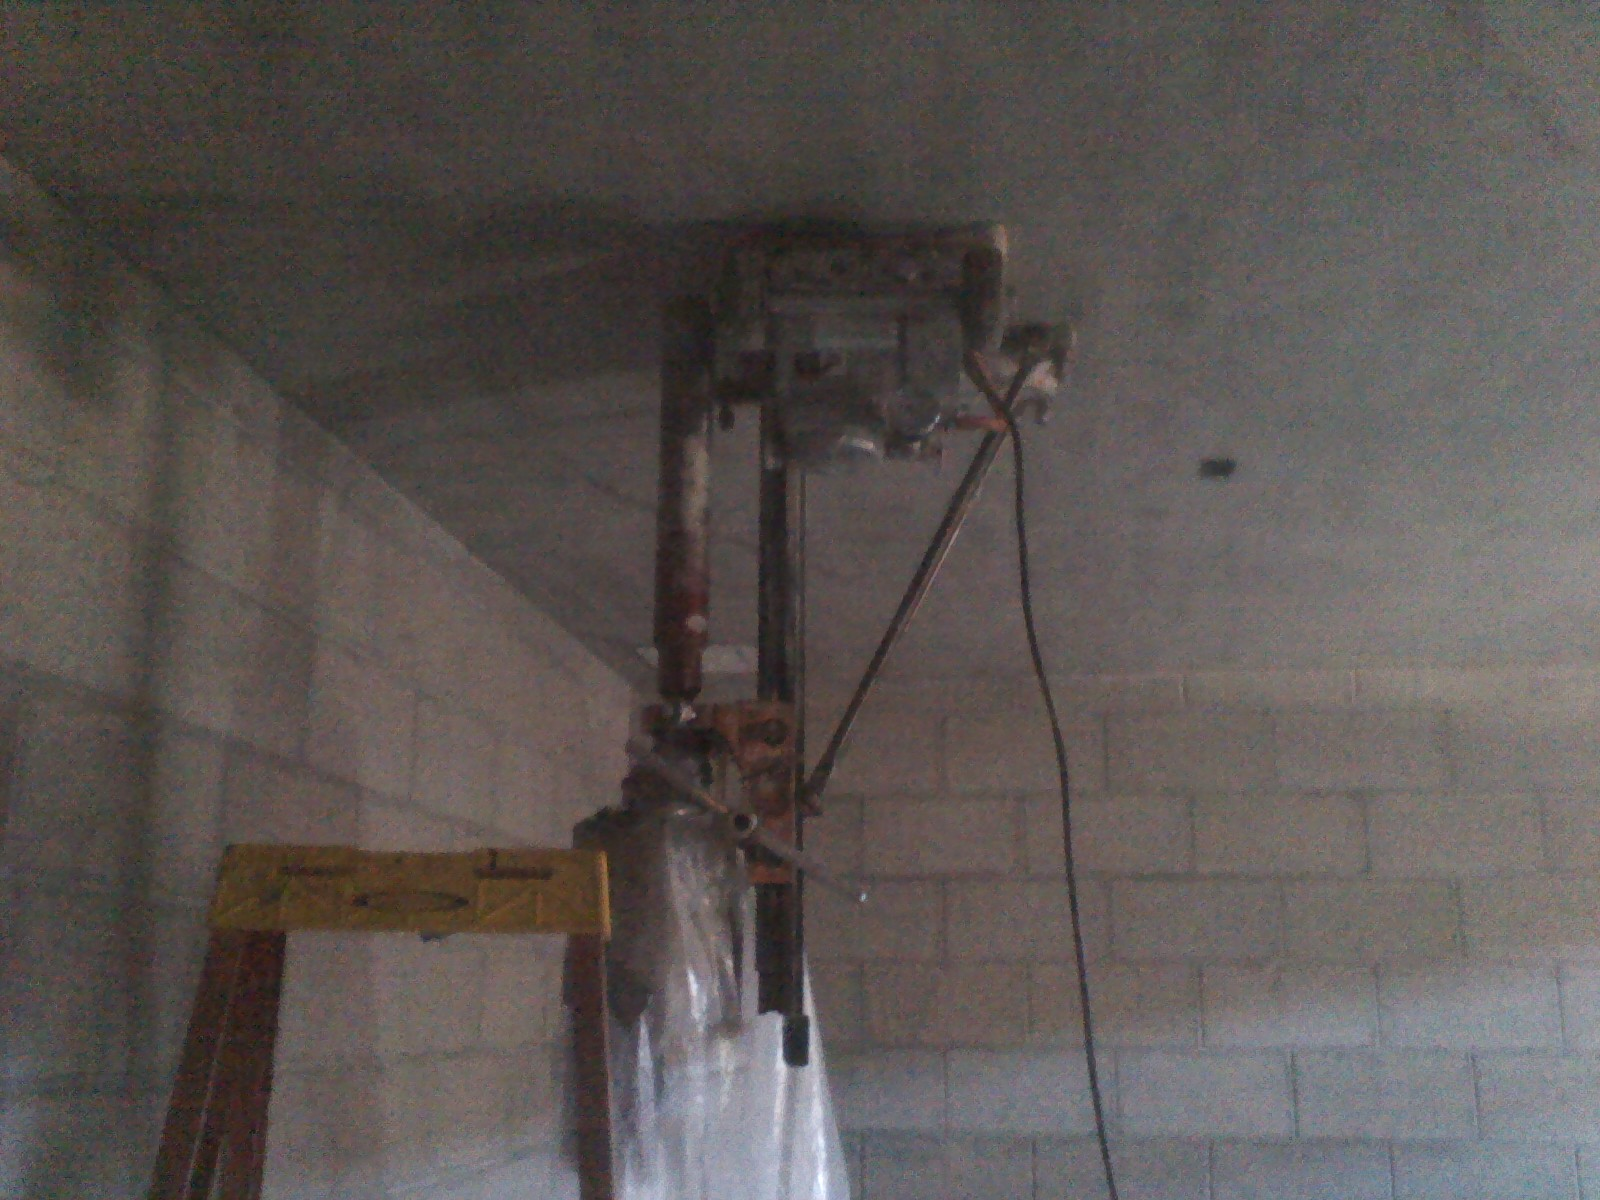 Upside-down drilling - Porter Construction Services LLC